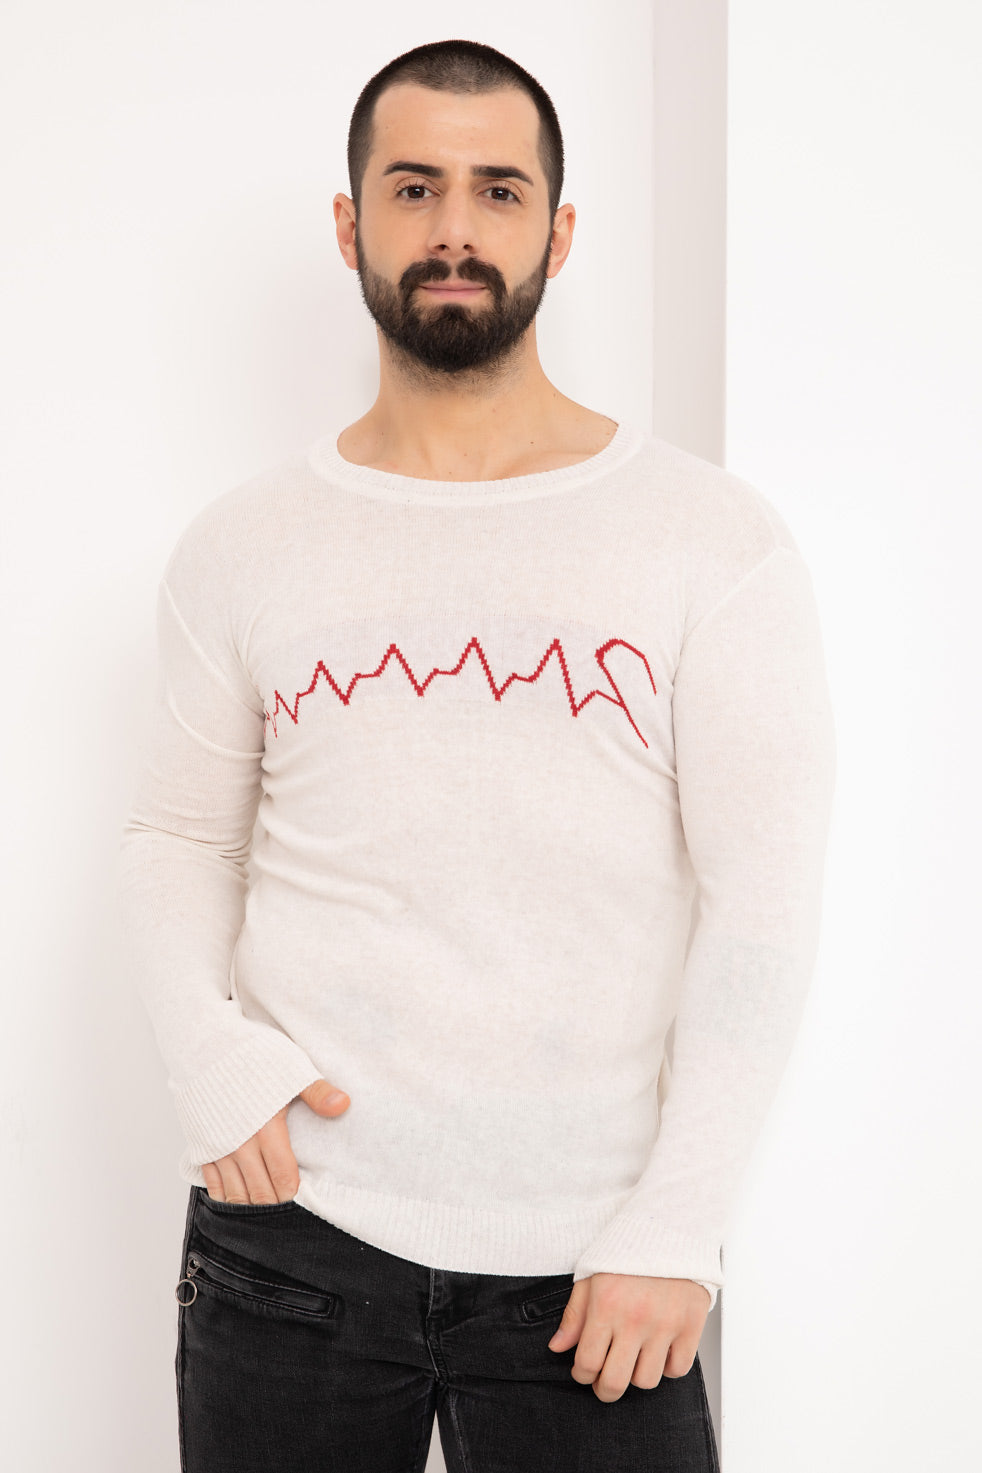 Off-white Heart Rhythm Printed Men's Knitwear Blouse